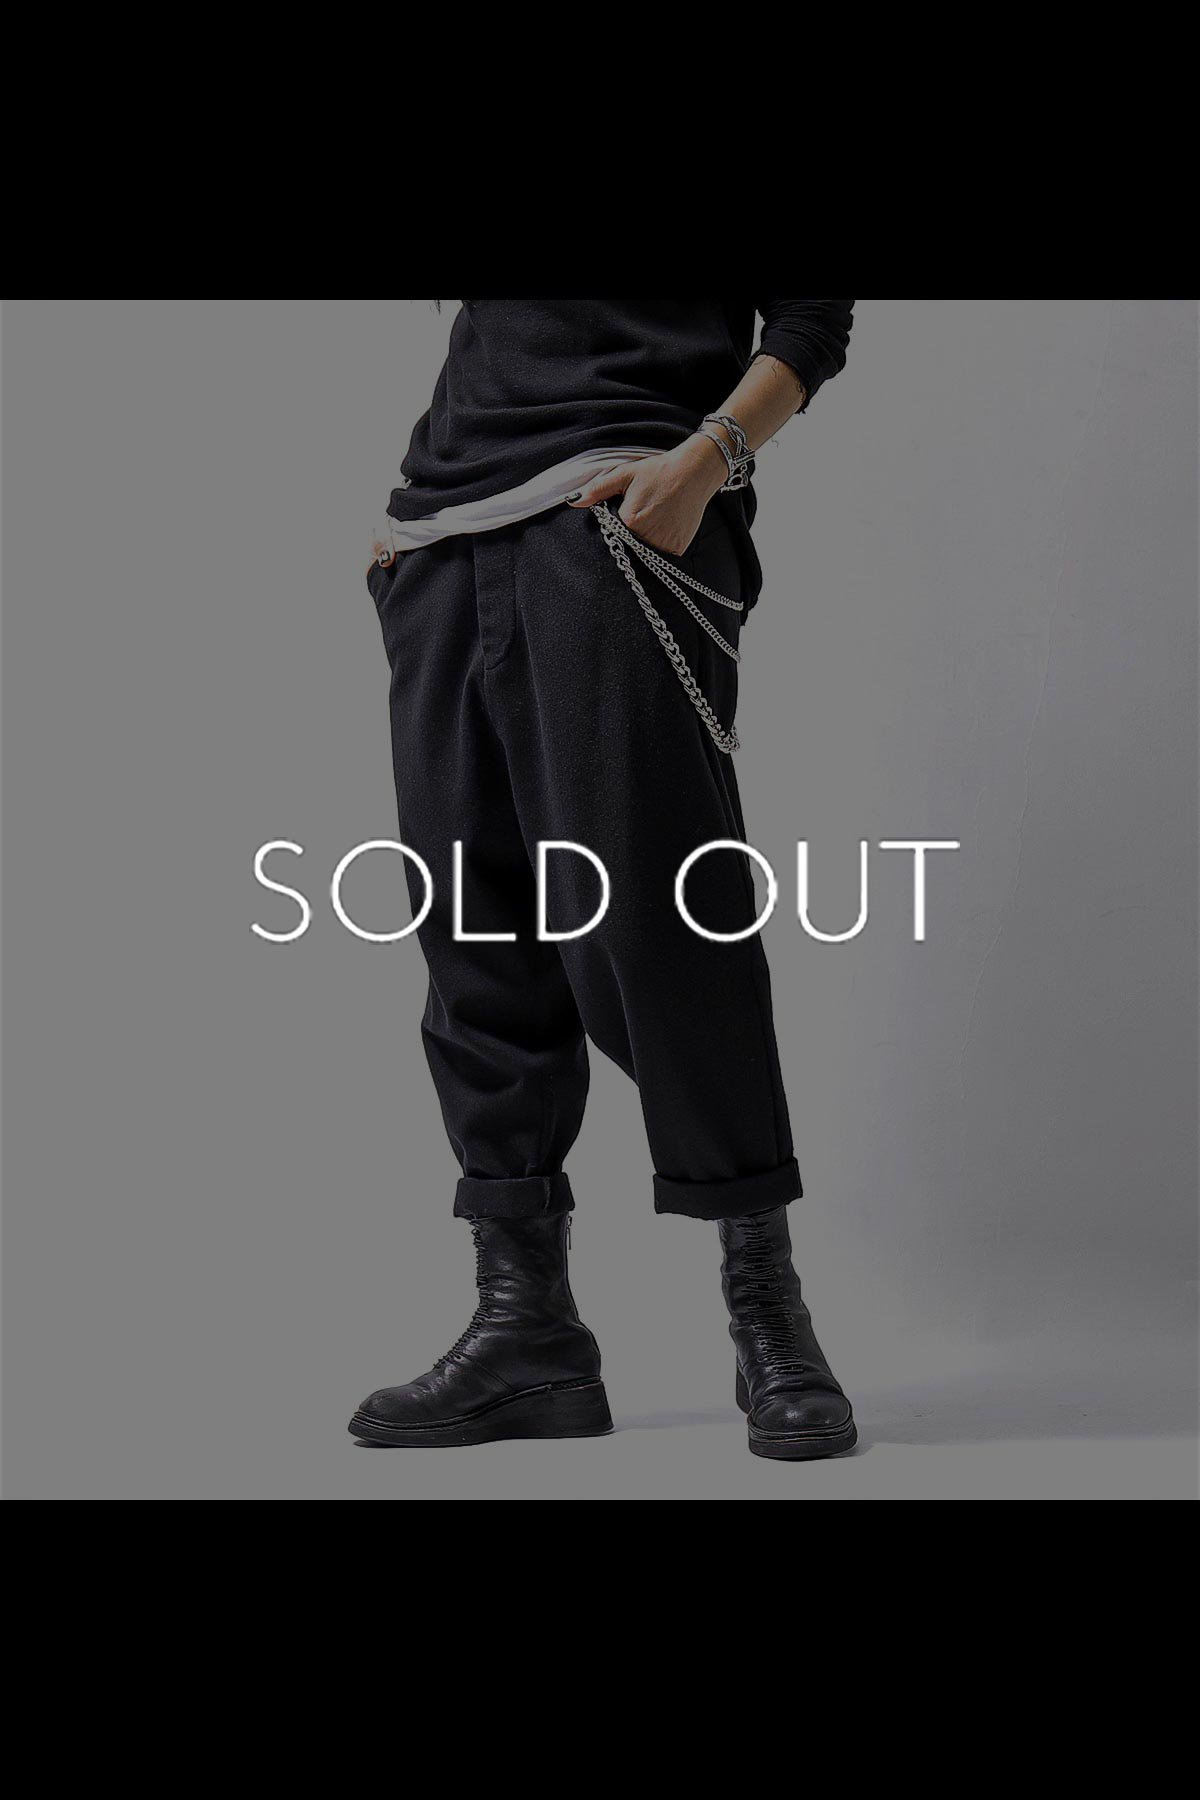 <img class='new_mark_img1' src='https://img.shop-pro.jp/img/new/icons56.gif' style='border:none;display:inline;margin:0px;padding:0px;width:auto;' />UNISEX LOW CROTCH WOOL PANTS P30_BLACK